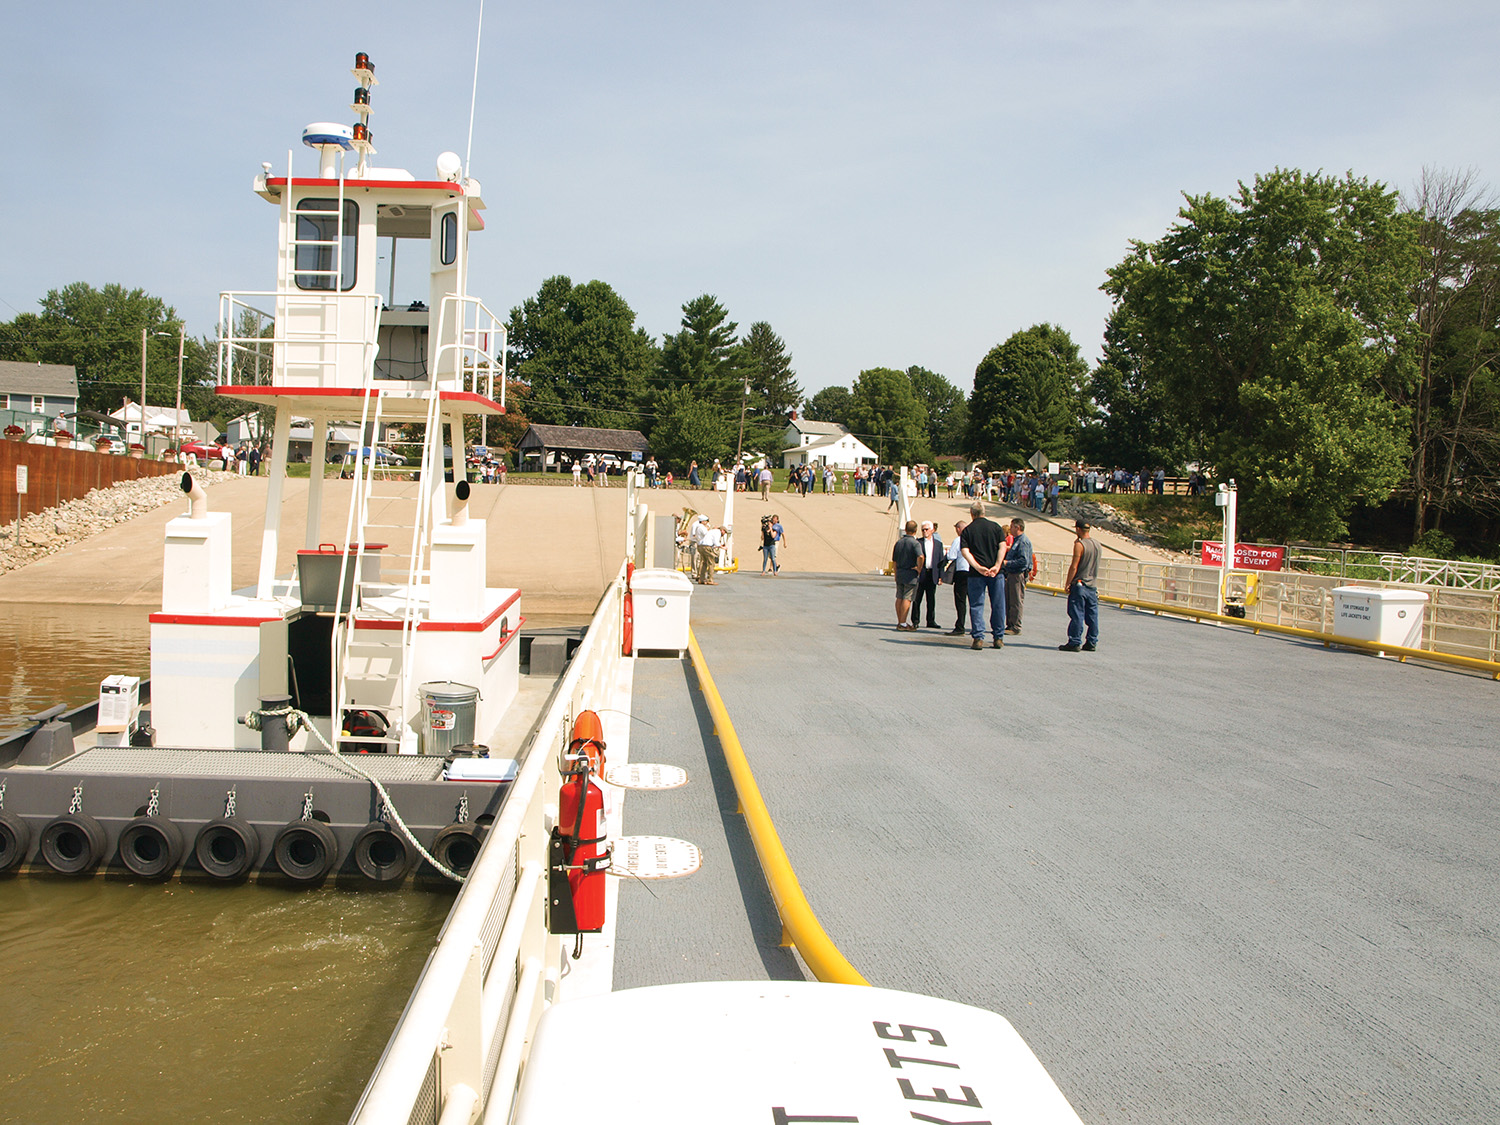 The new ferry boat and barge serving Rising Sun, Ind., and Rabbit Hash, Ky., were christened July 12 in a ceremony at Rising Sun. The ferry is owned and operated by Full House Resorts, the parent company of the Rising Star Casino and Resort at Rising Sun, Ind. (photo by Jim Ross)